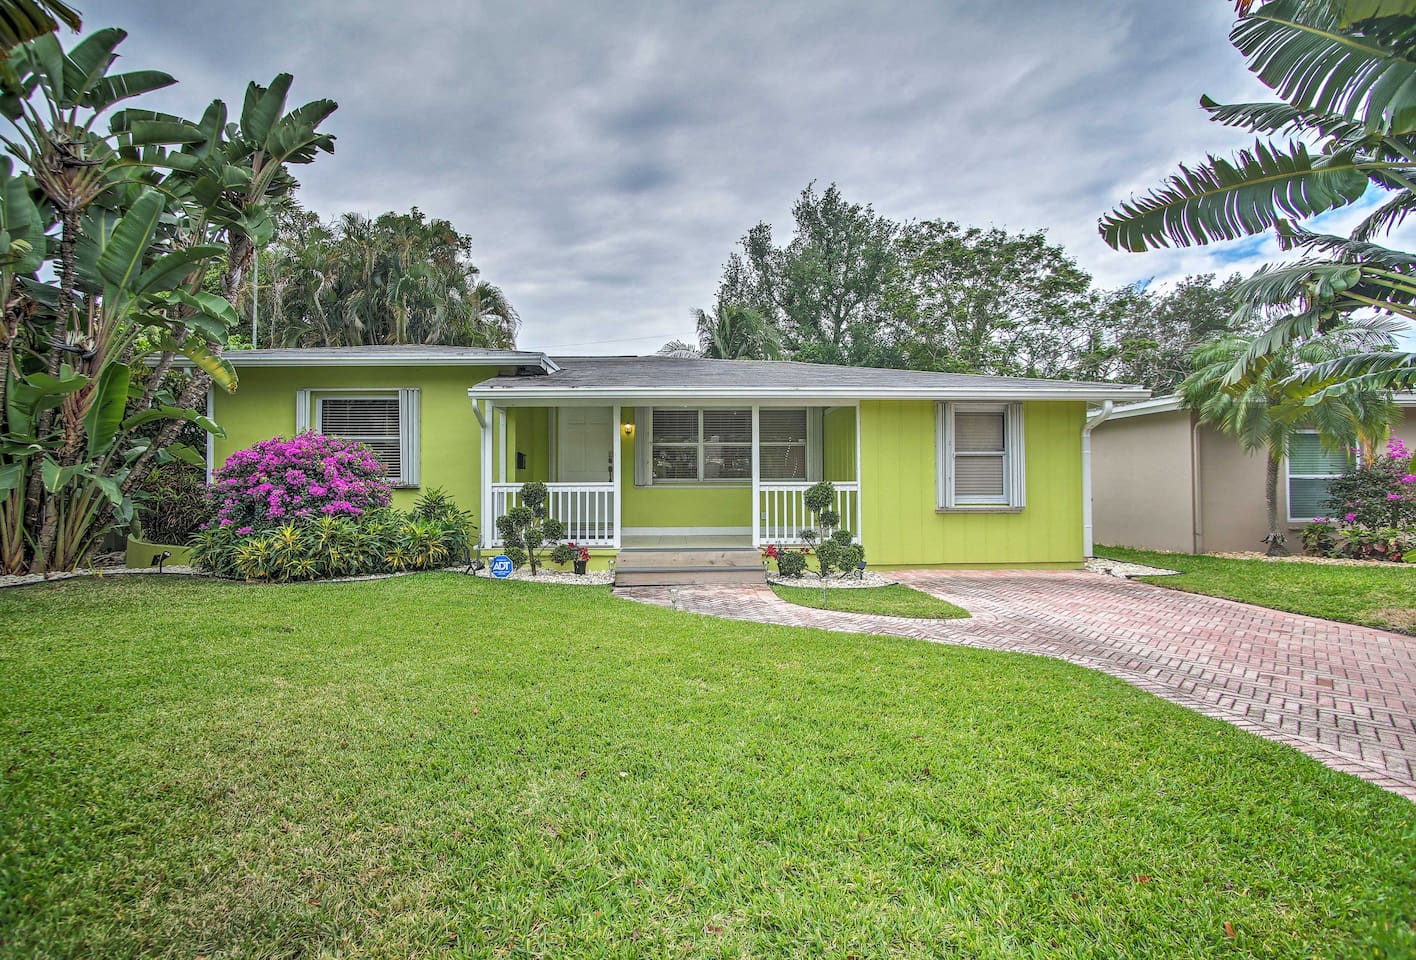 Book your South Florida escape to this 3-bedroom, 2-bath vacation rental!